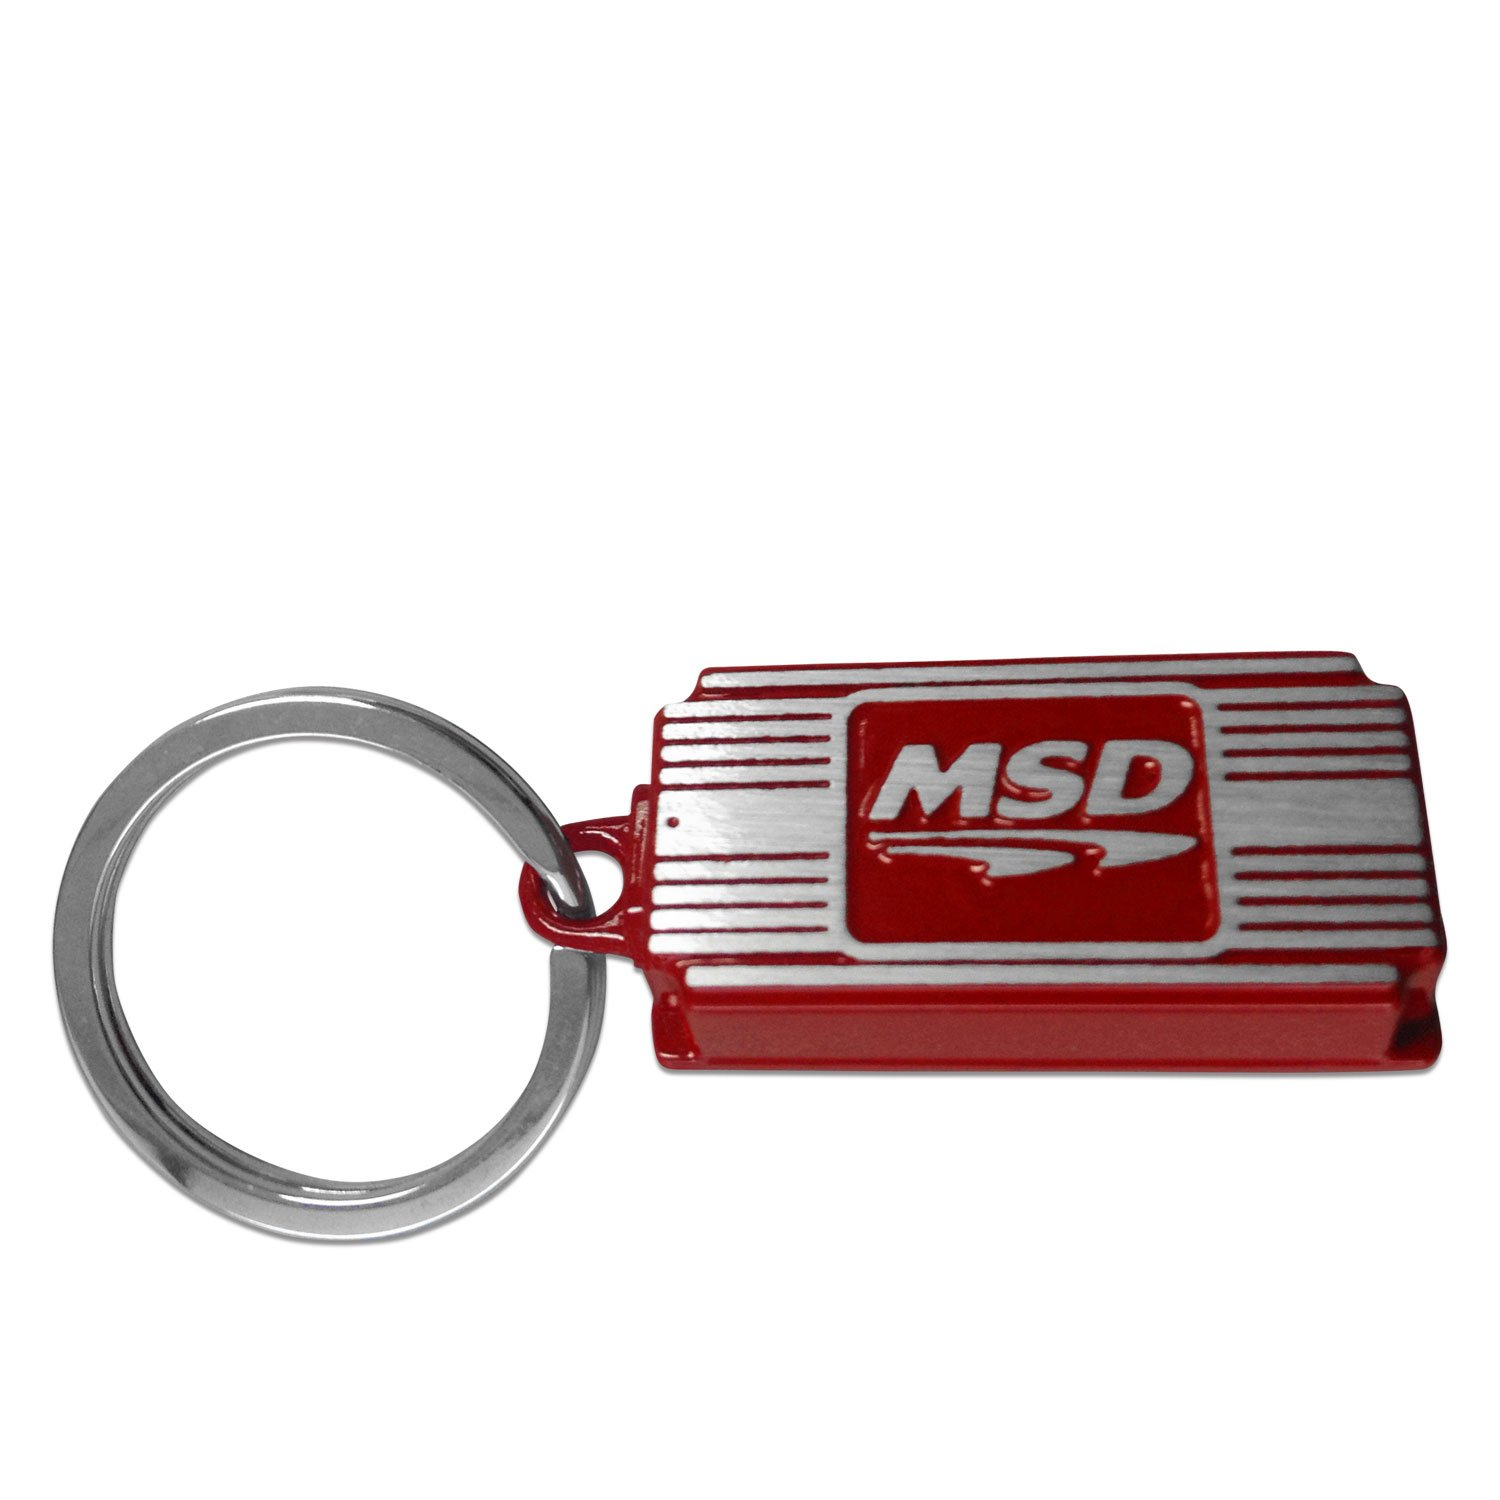 9390 - MSD 6AL Key Chain Image